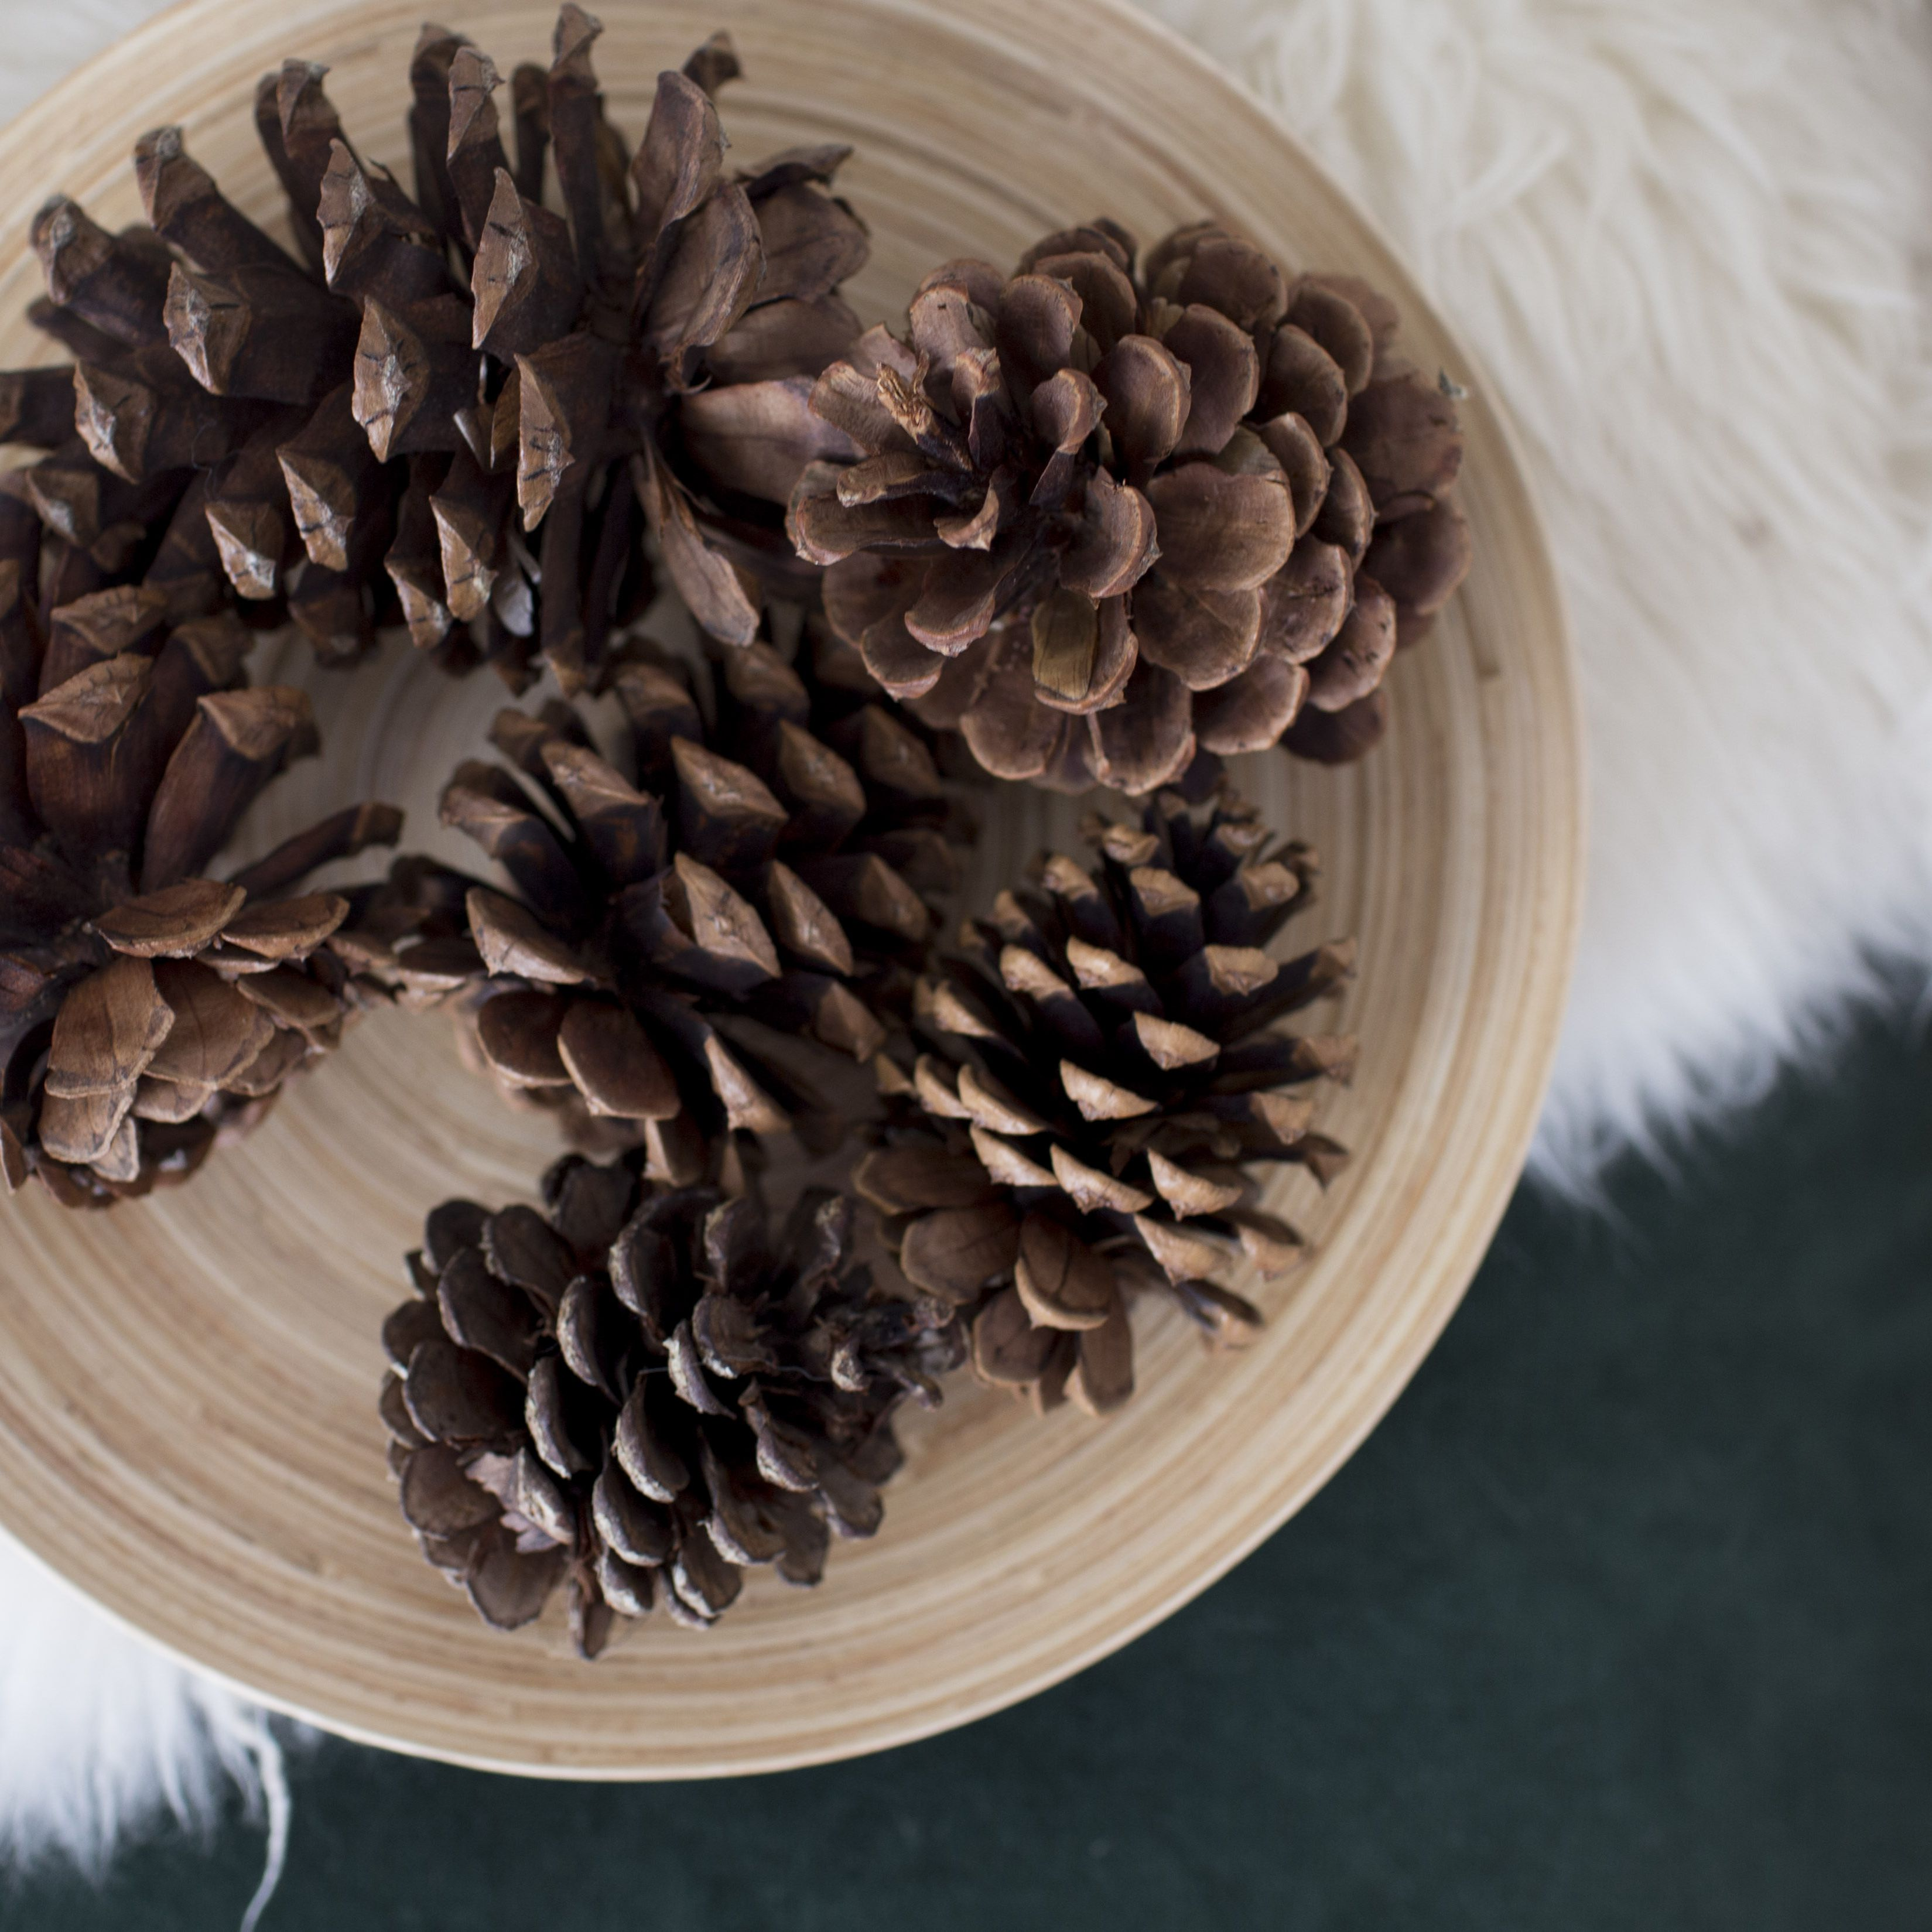 How To Make Scented Pine Cones With Essential Oils